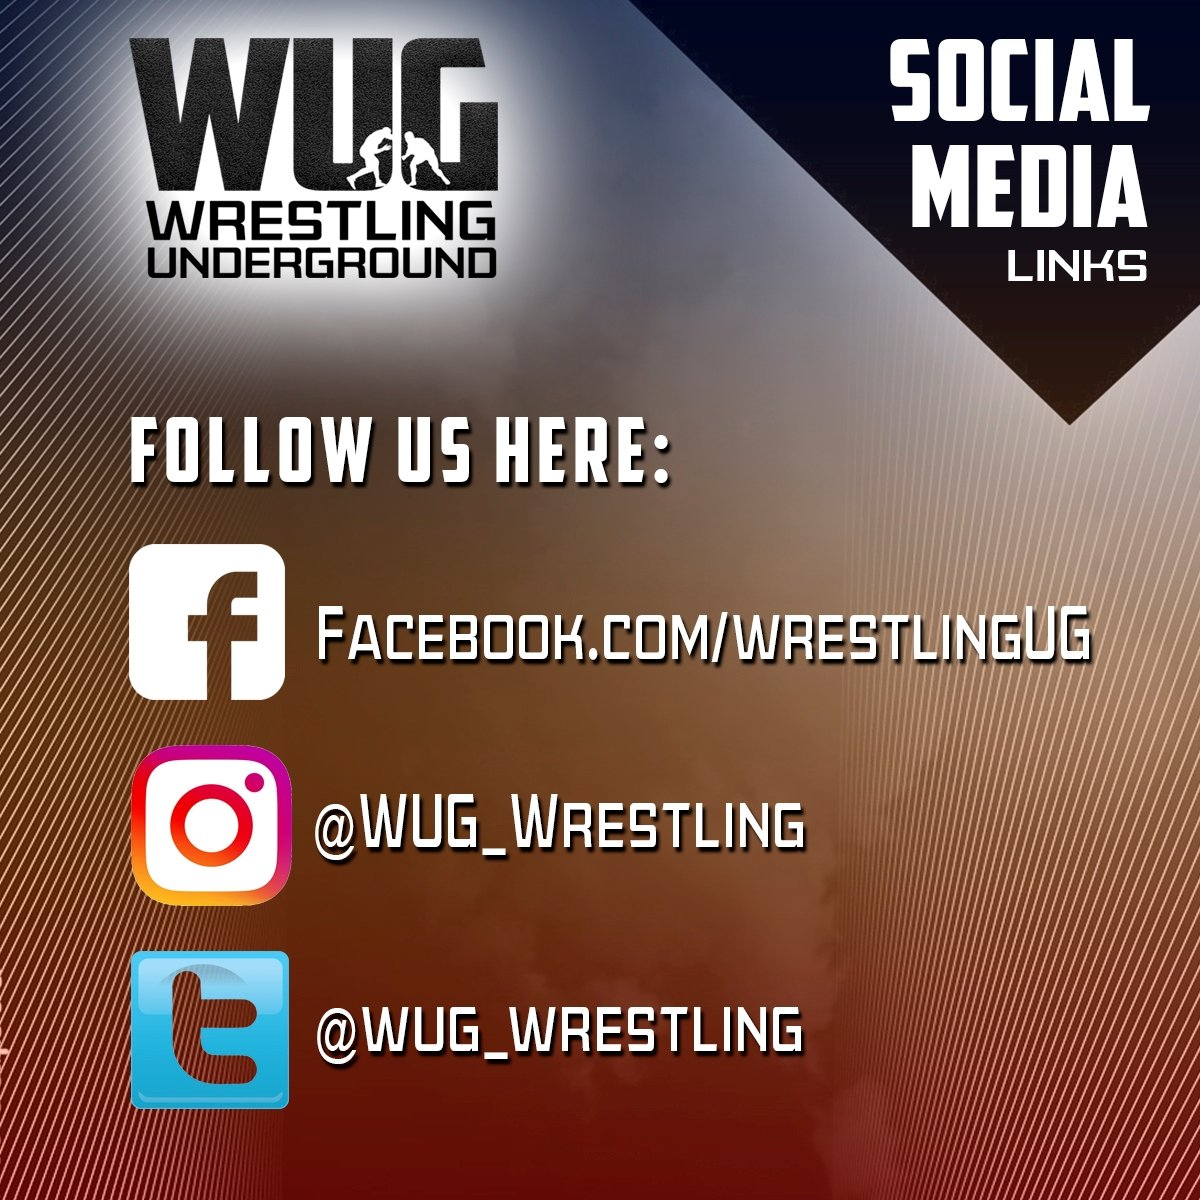 We're on social media! You can follow us now on Facebook, Instagram and Twitter.   To those who have already followed, THANK YOU! Please share the word!  #wug #wug1 #wrestlingislife #wrestlingunderground #wrestle #wrestlers #freestylewrestling #grecoromanwrestling #chaelsonnen https://t.co/nHZnZ36gqo